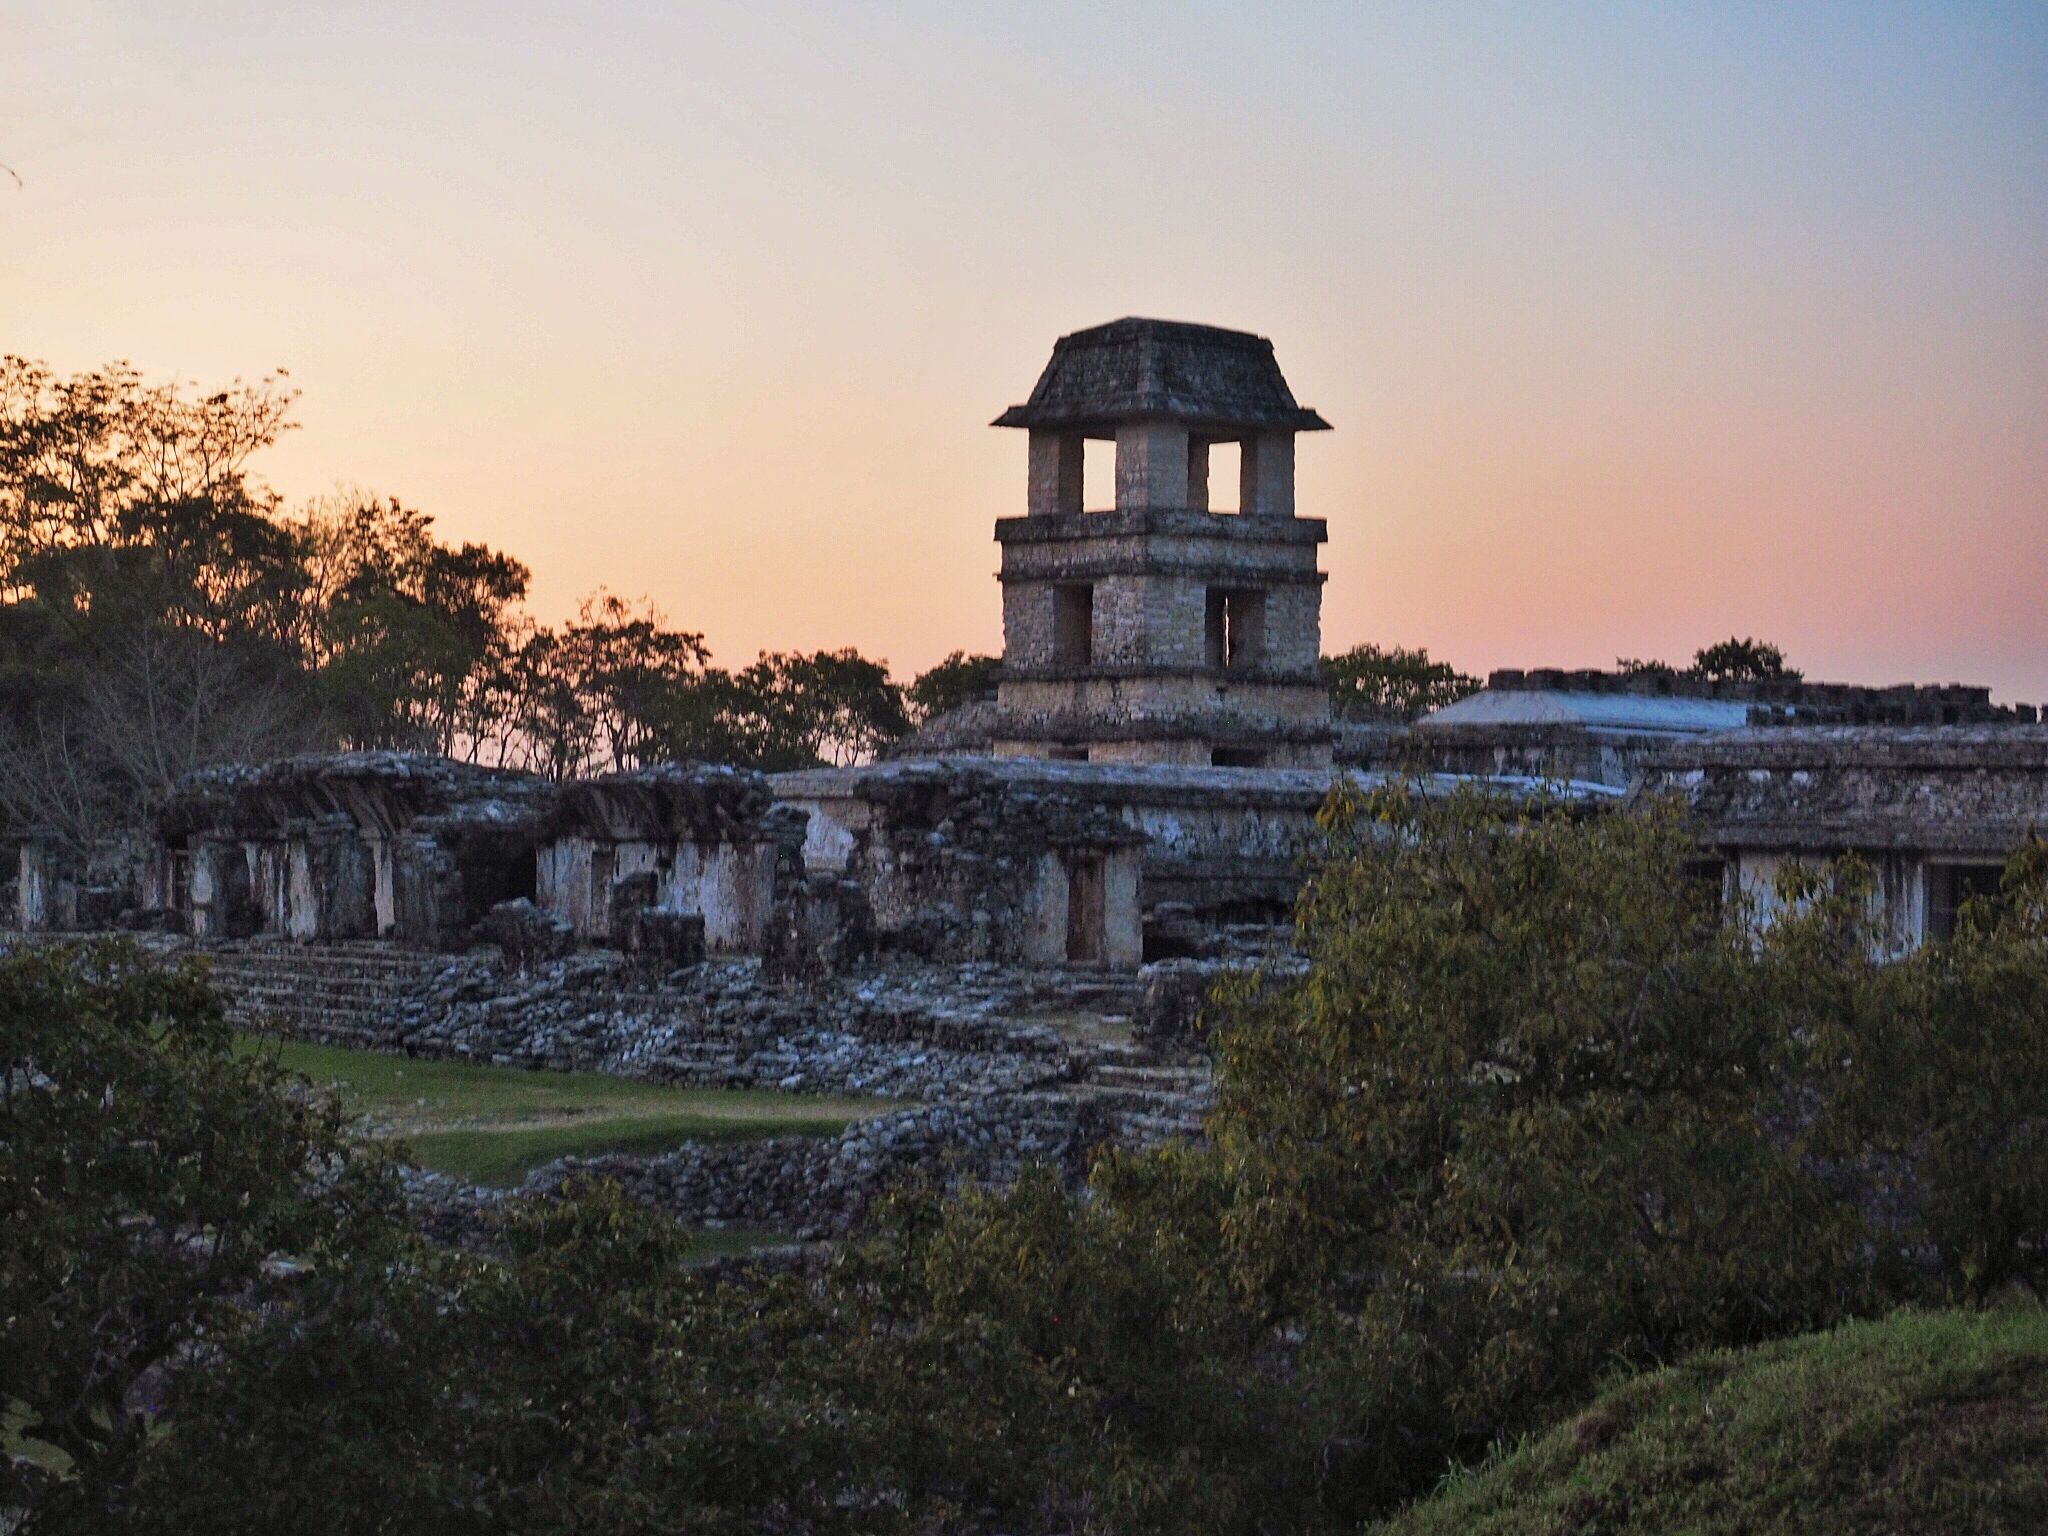 A insider tip to after-hours access at the ancient Mayan city of <a ...